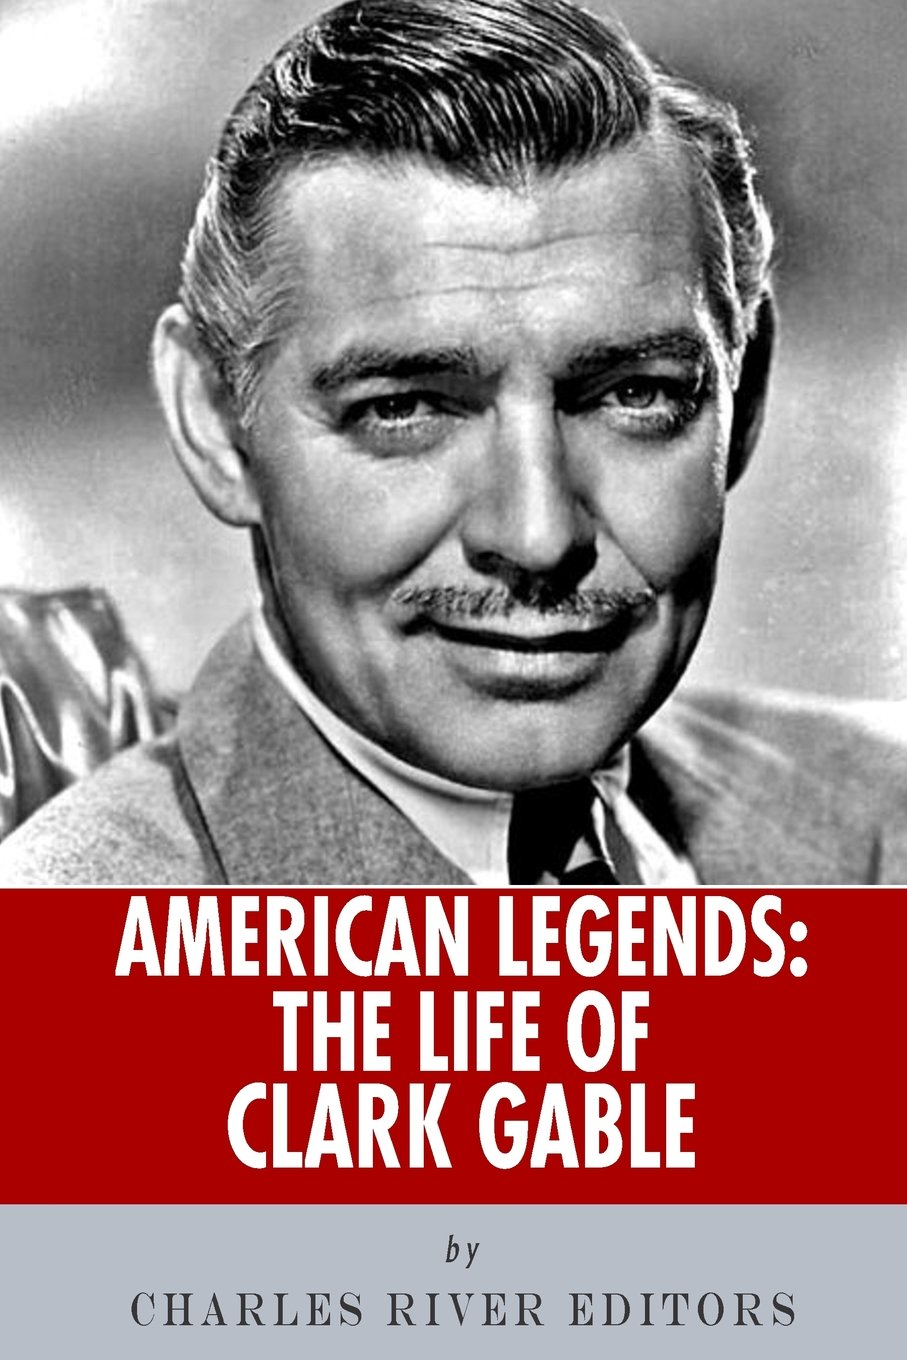 American Legends: The Life of Clark Gable